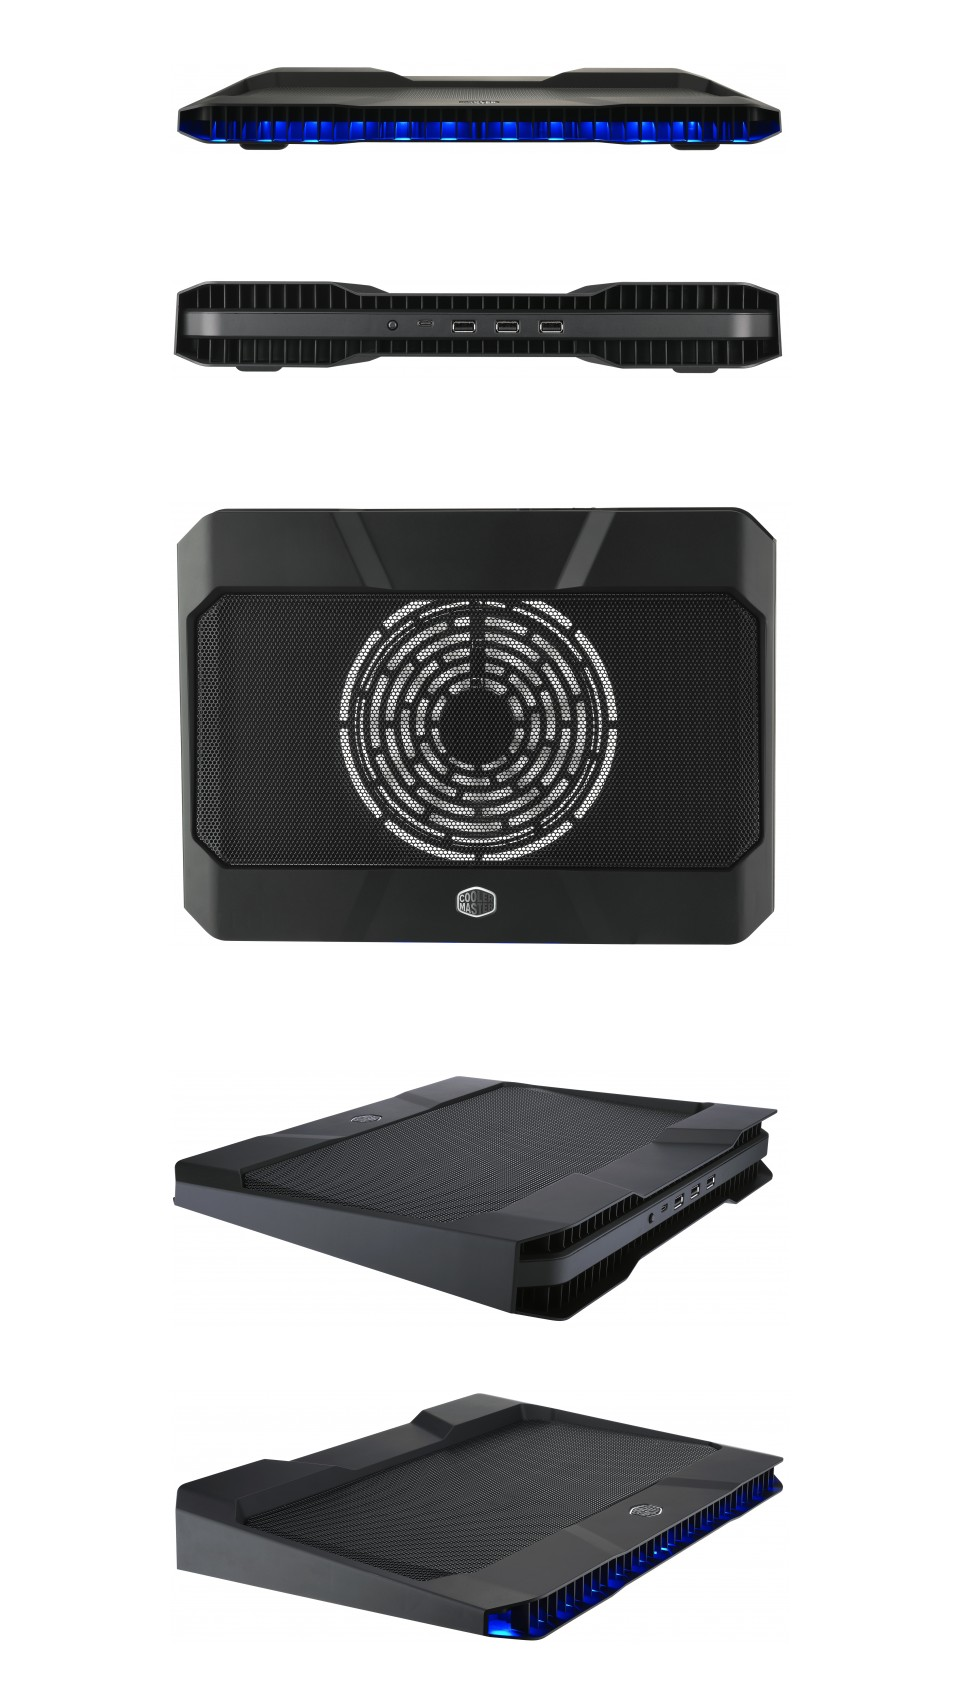 Cooler Master Notepal X150R Laptop Cooler product